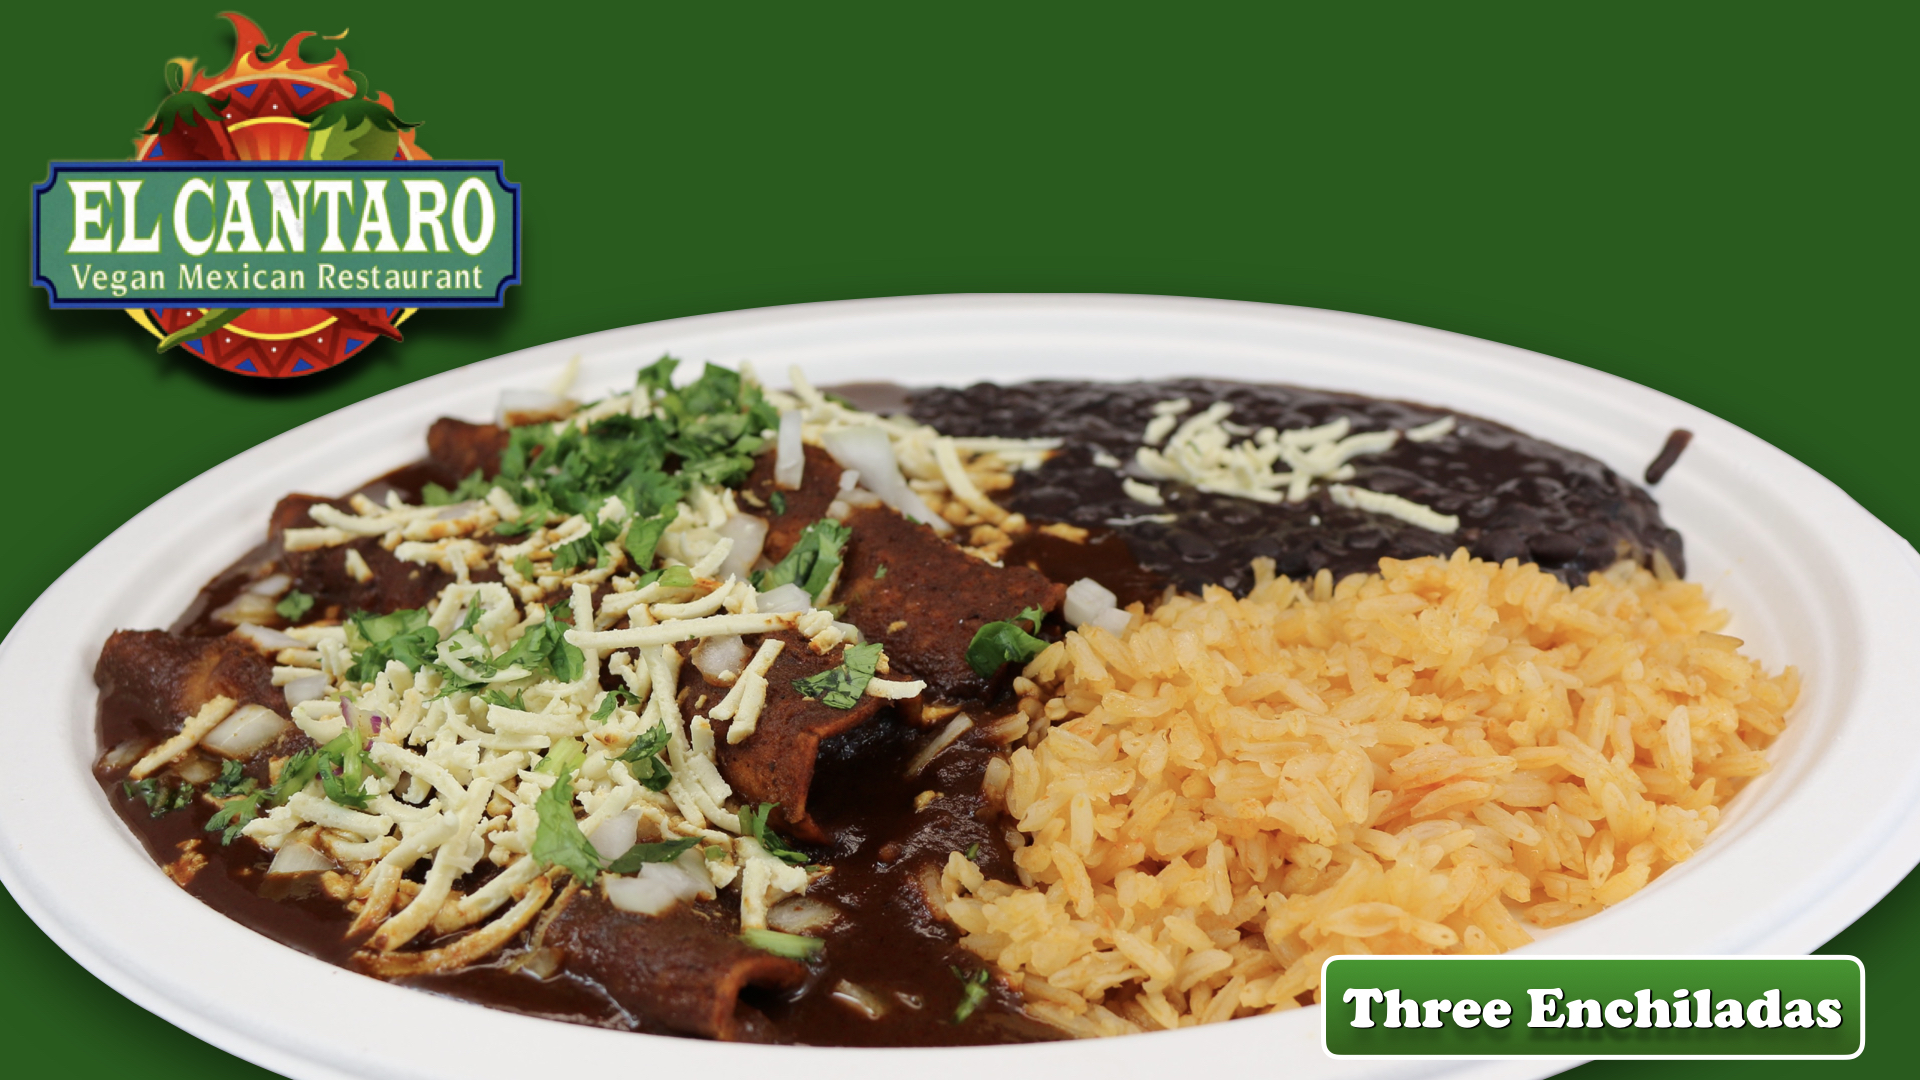 Enchiladas your choice of Chickin'  or Steak